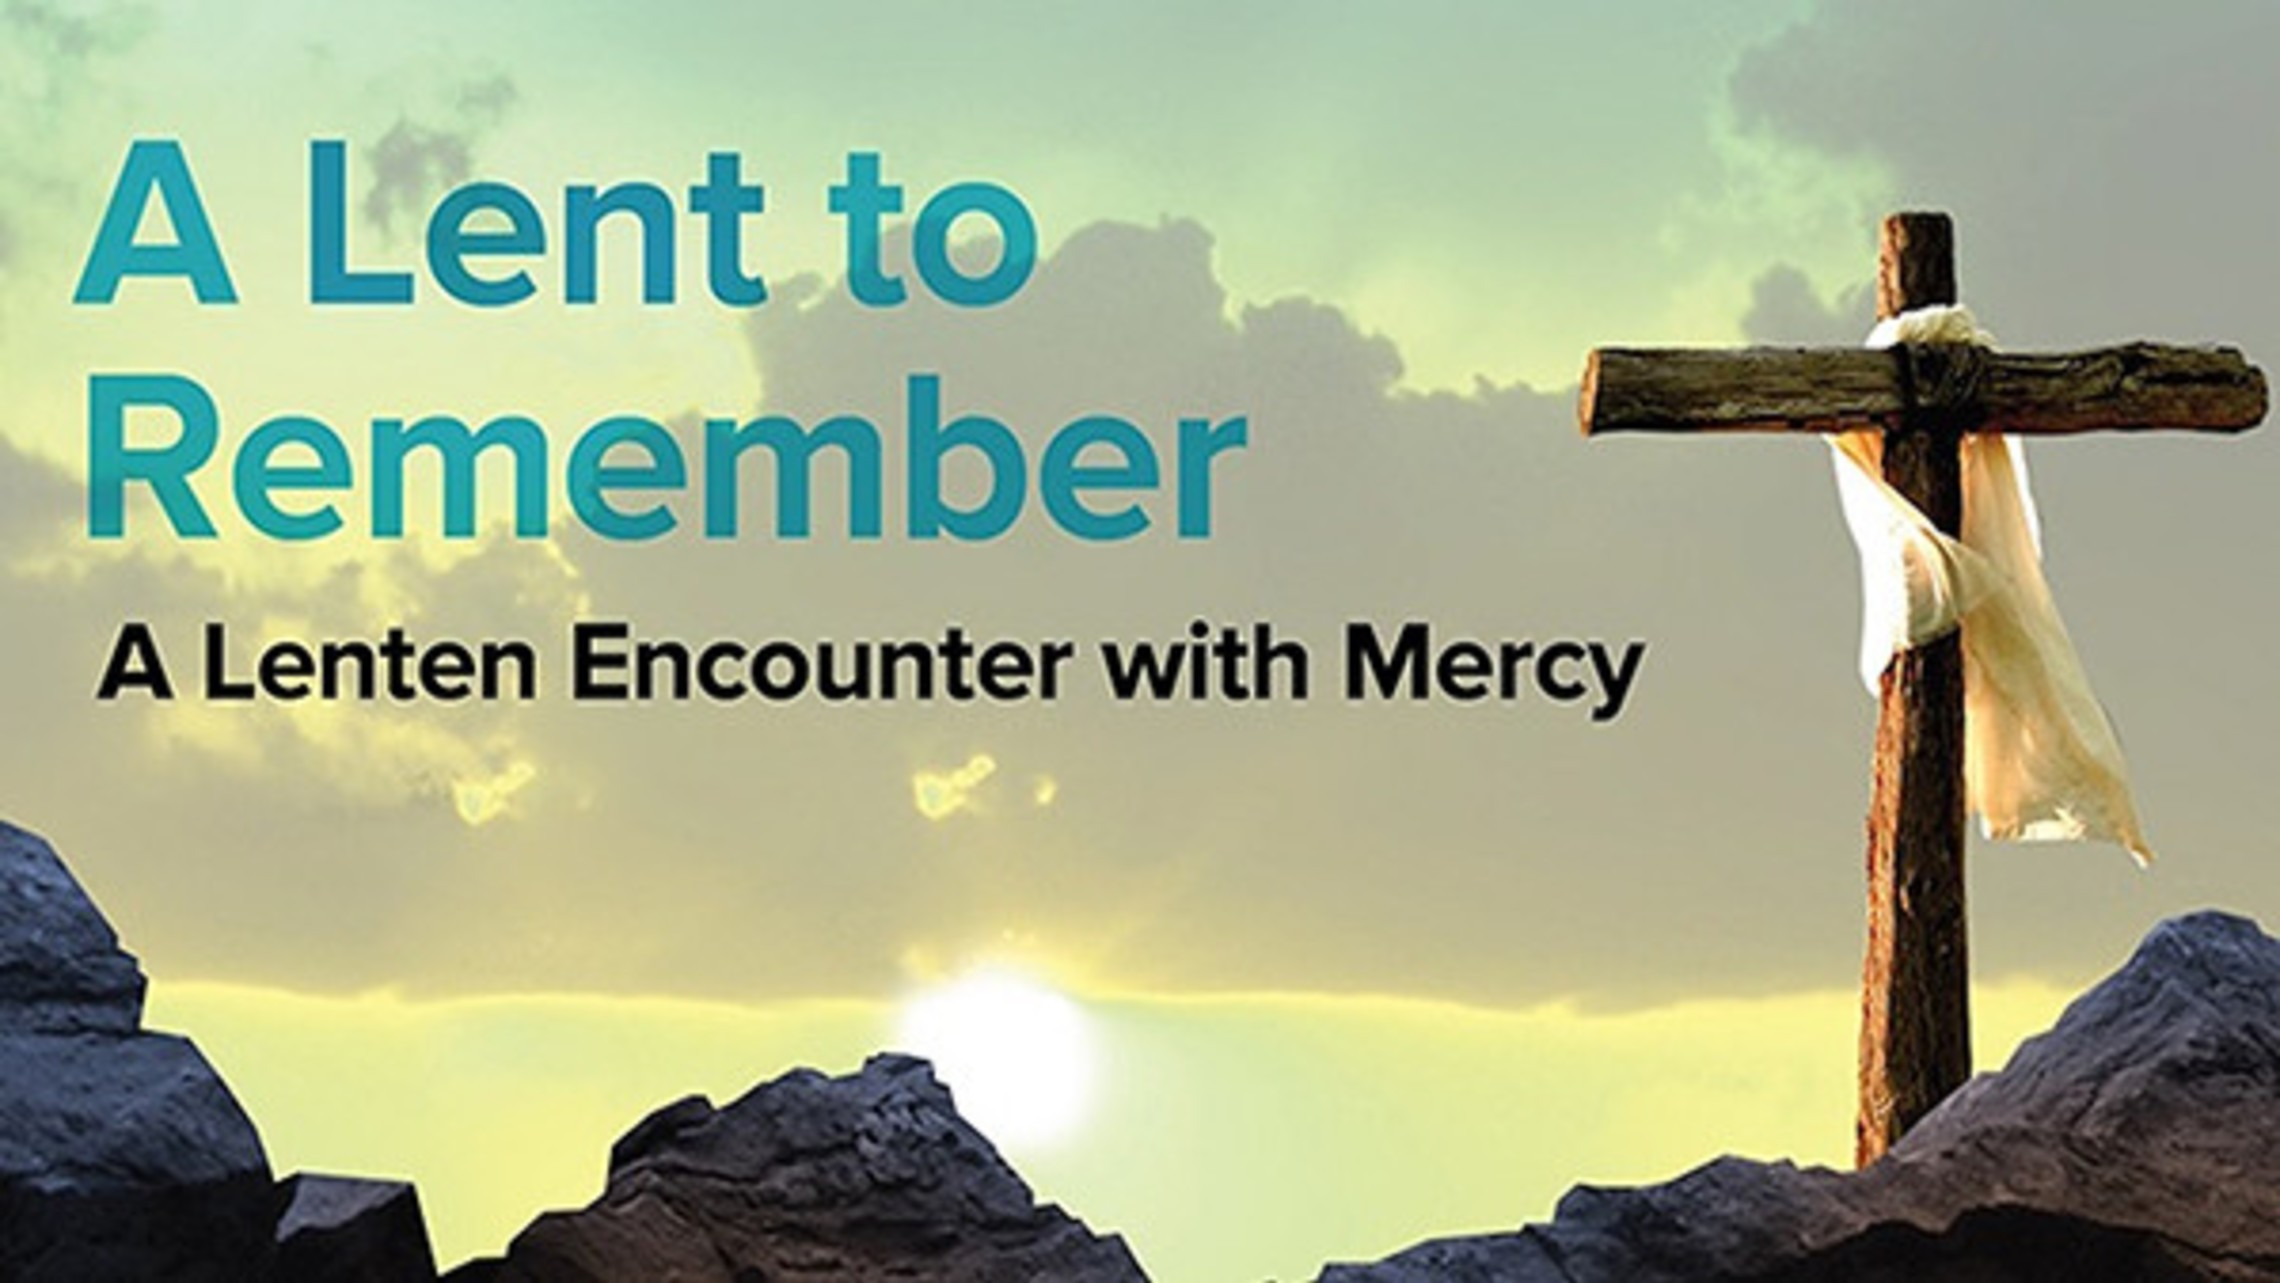 Formed - Lent Encounter with Mercy